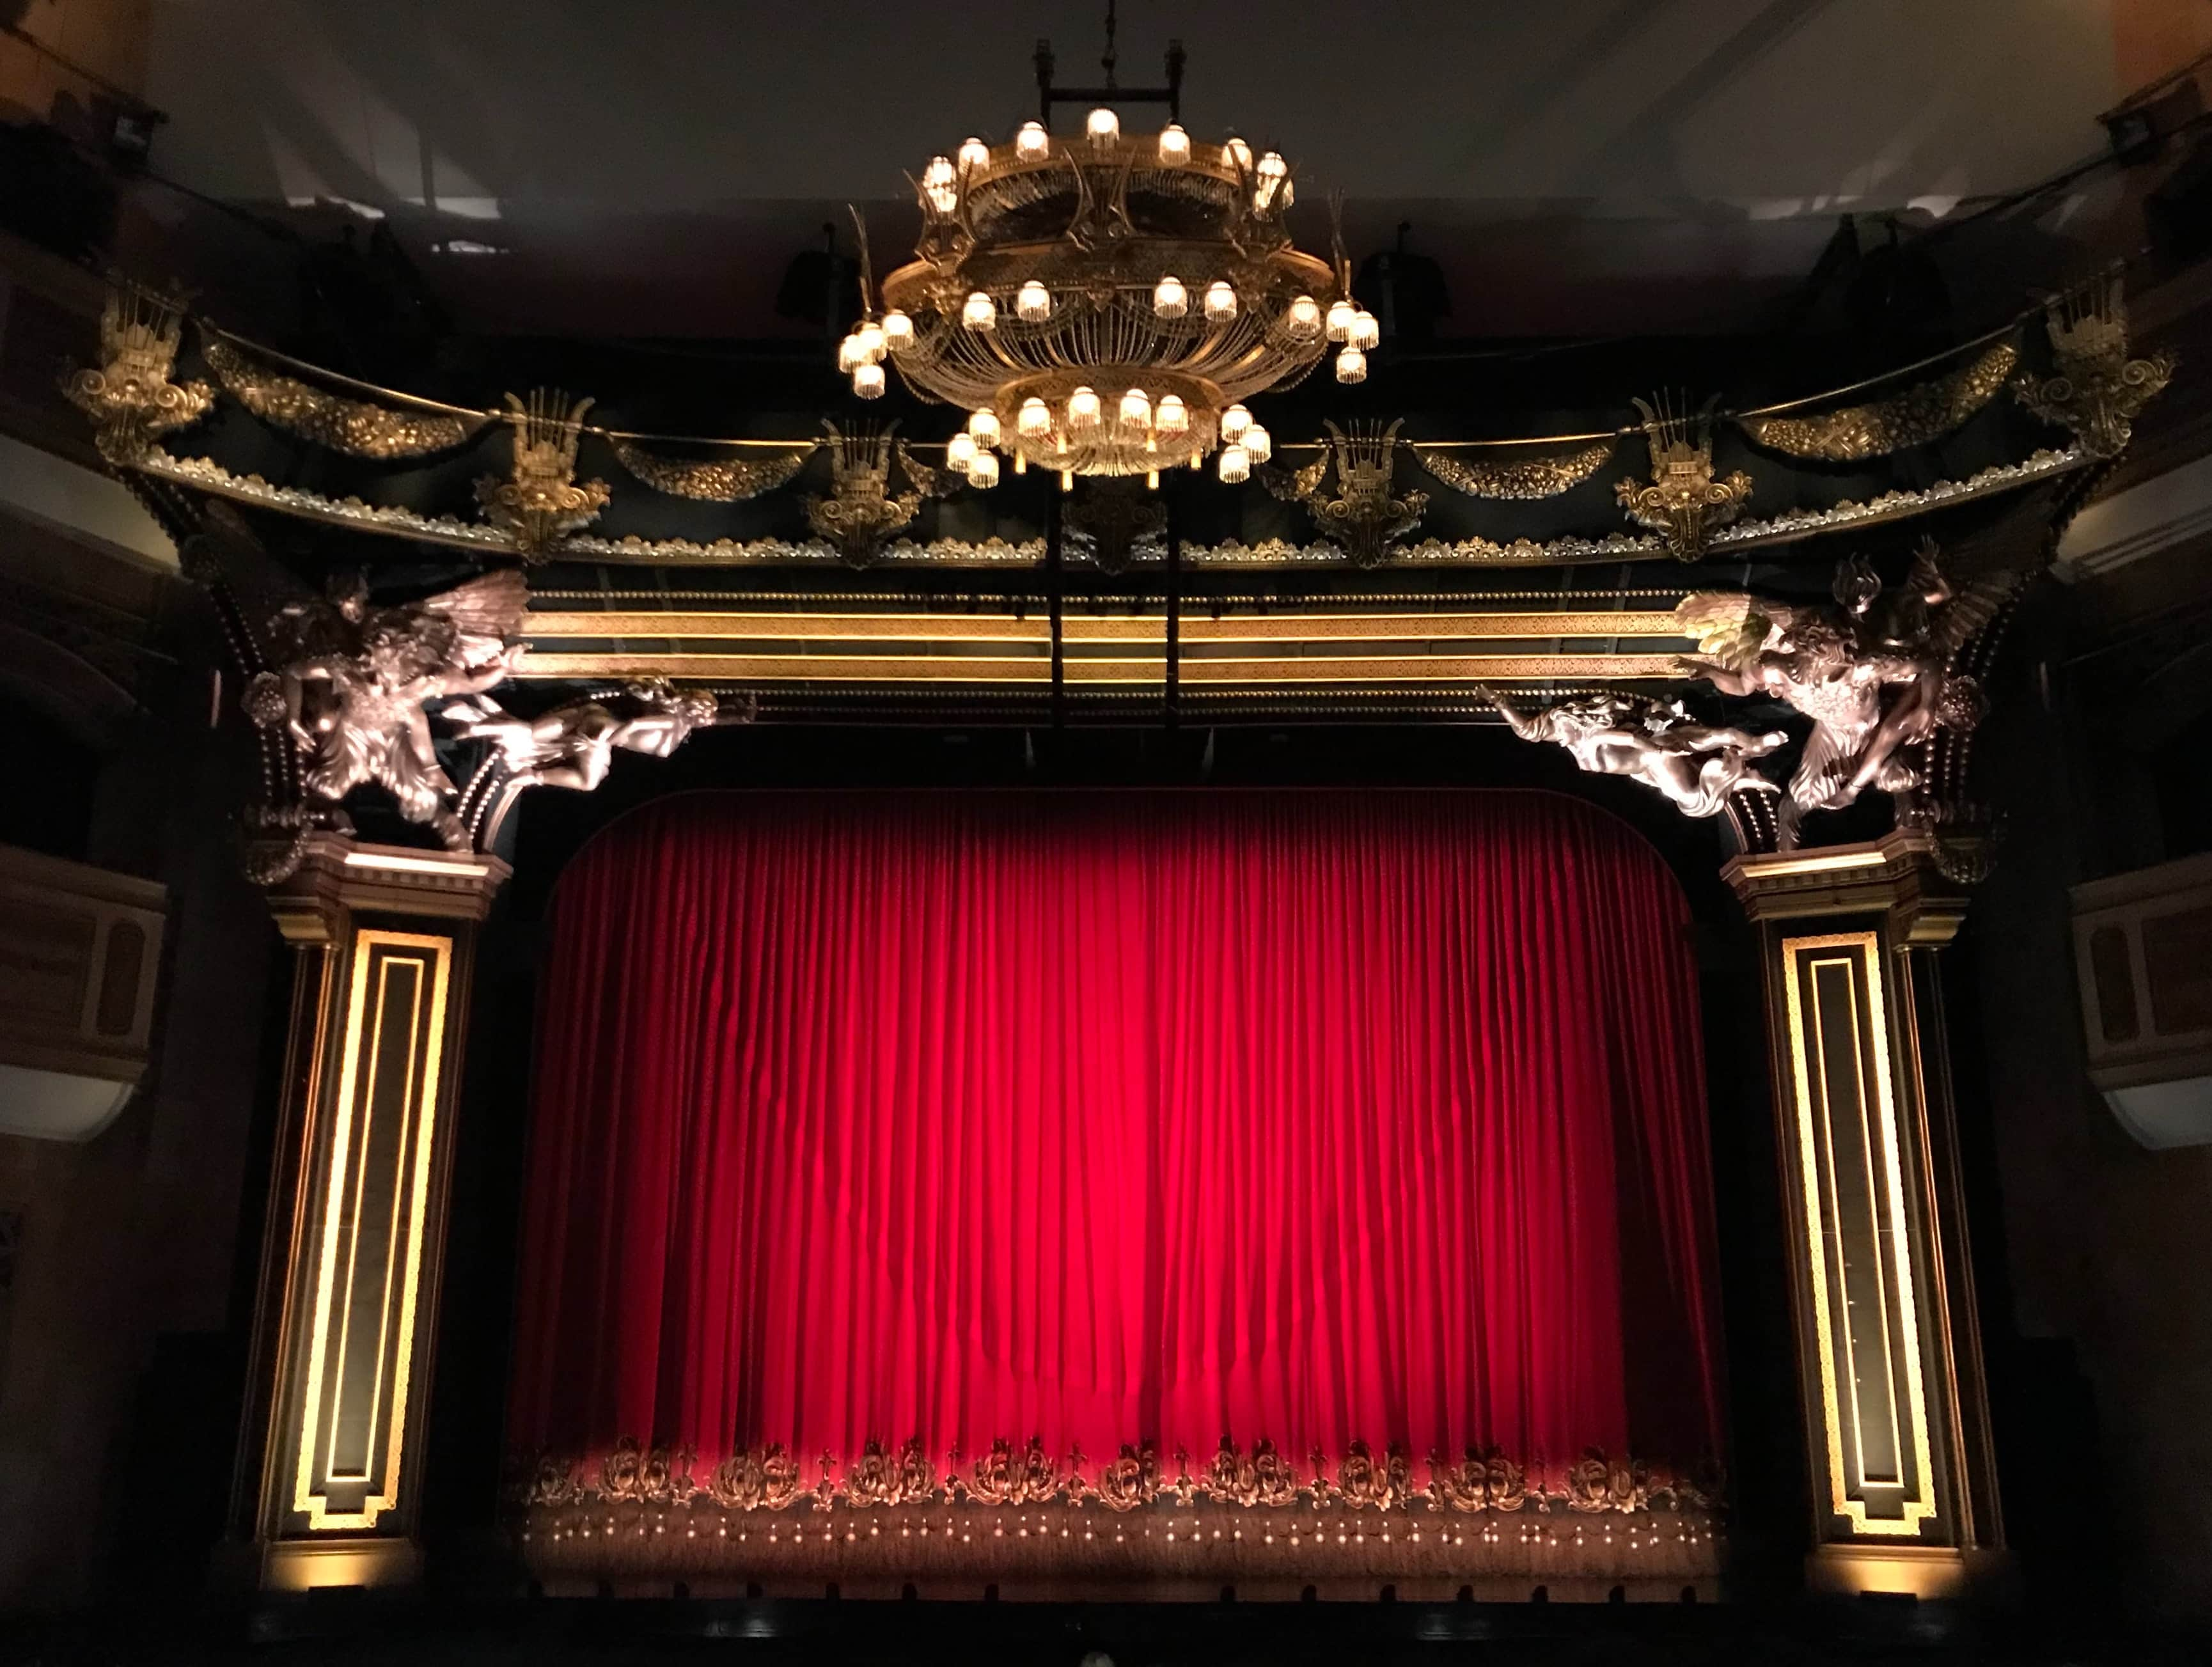 Filmmaking Trends in 2020 - An Image of a red Curtain in a Theatre